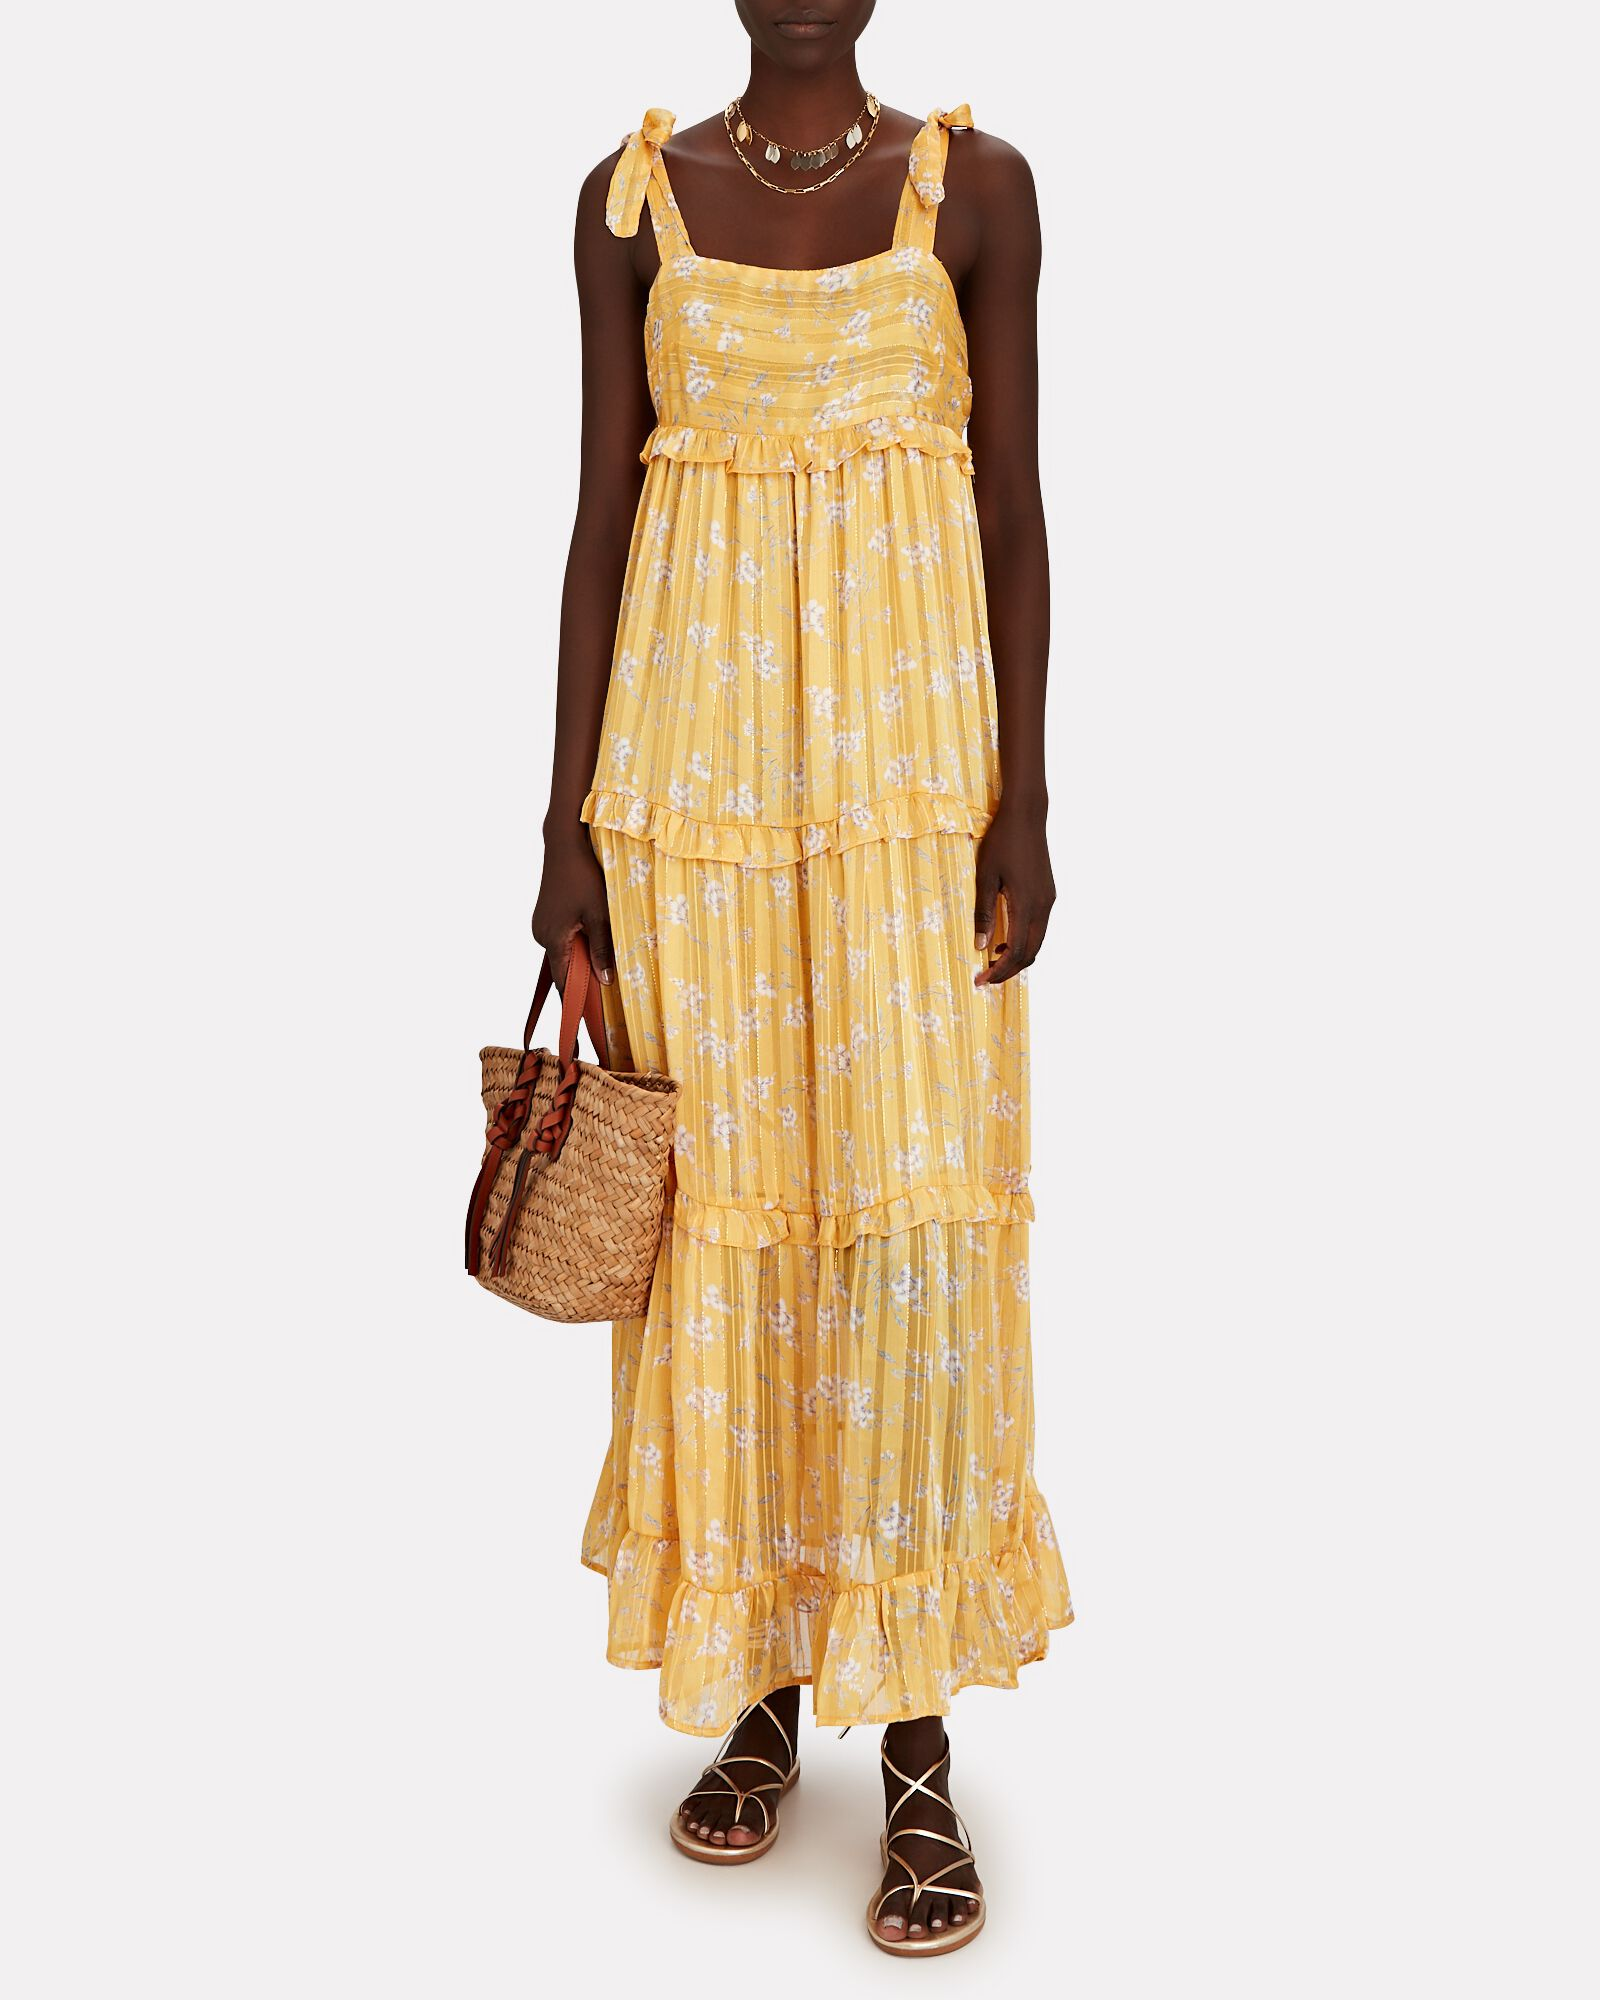 Octavia Sleeveless Floral Midi Dress, YELLOW, hi-res